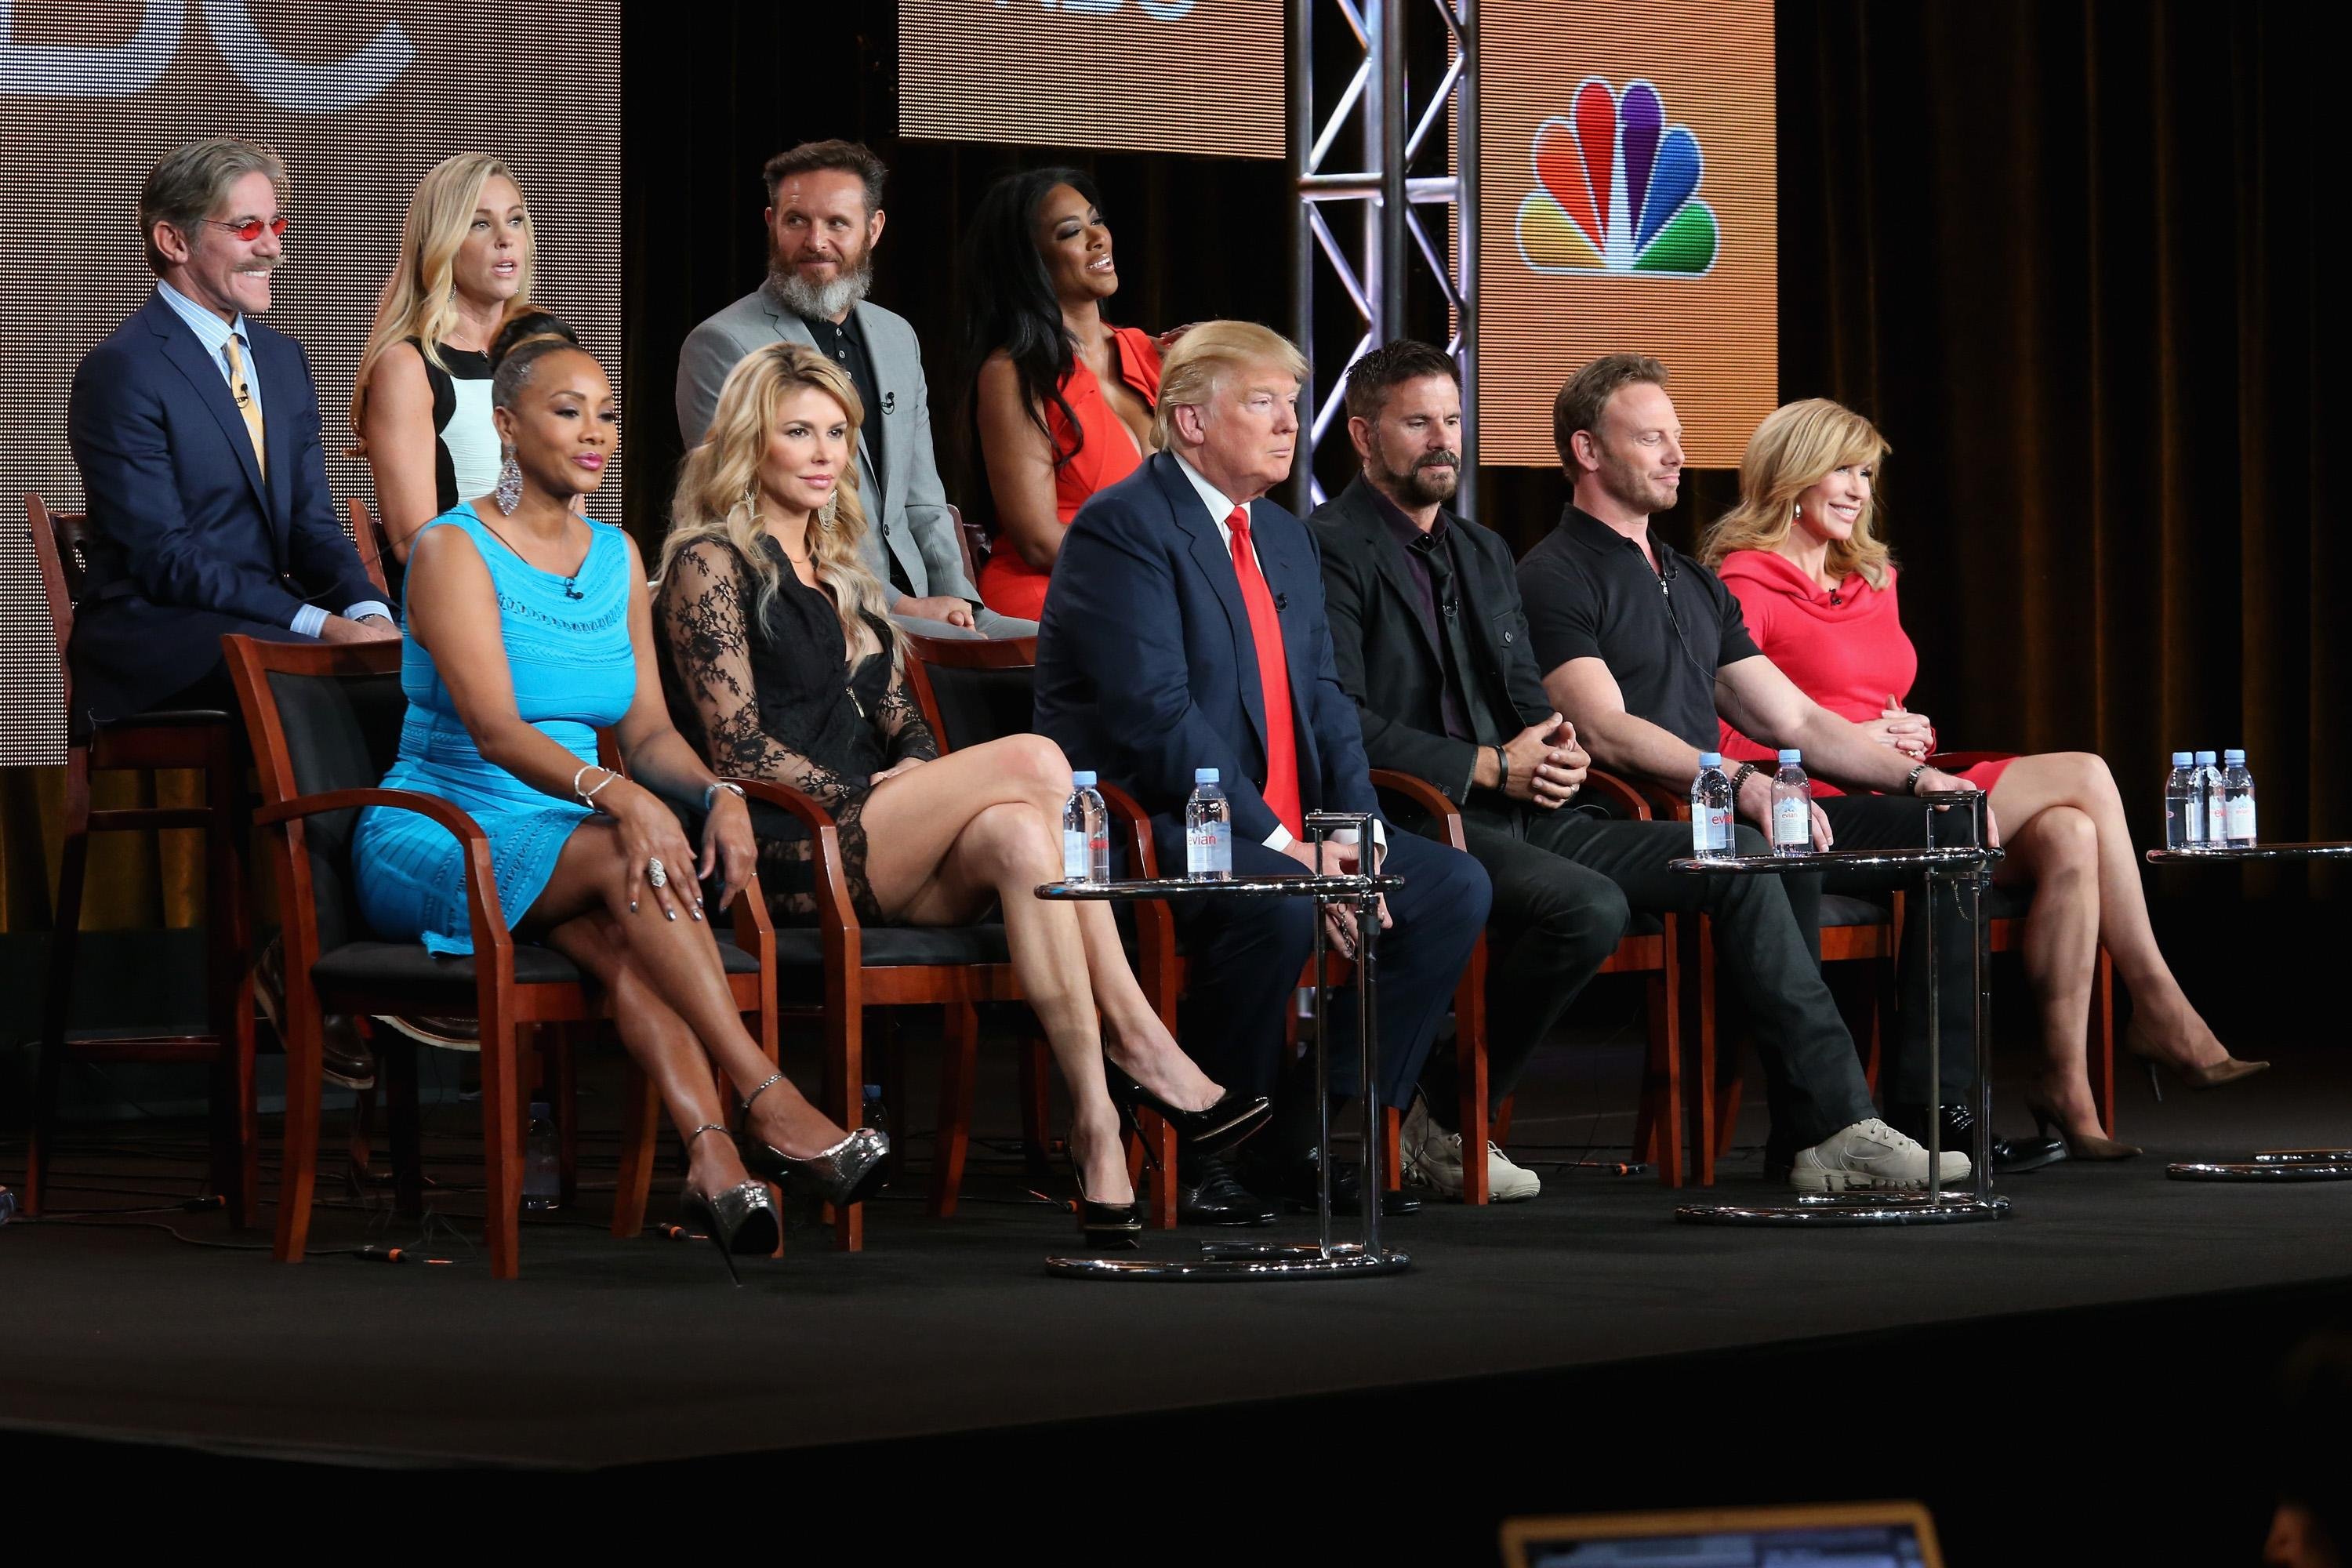 Geraldo Rivera and Donald Trump appeared on The Celebrity Apprentice in 2015. (Photo: Getty Images)